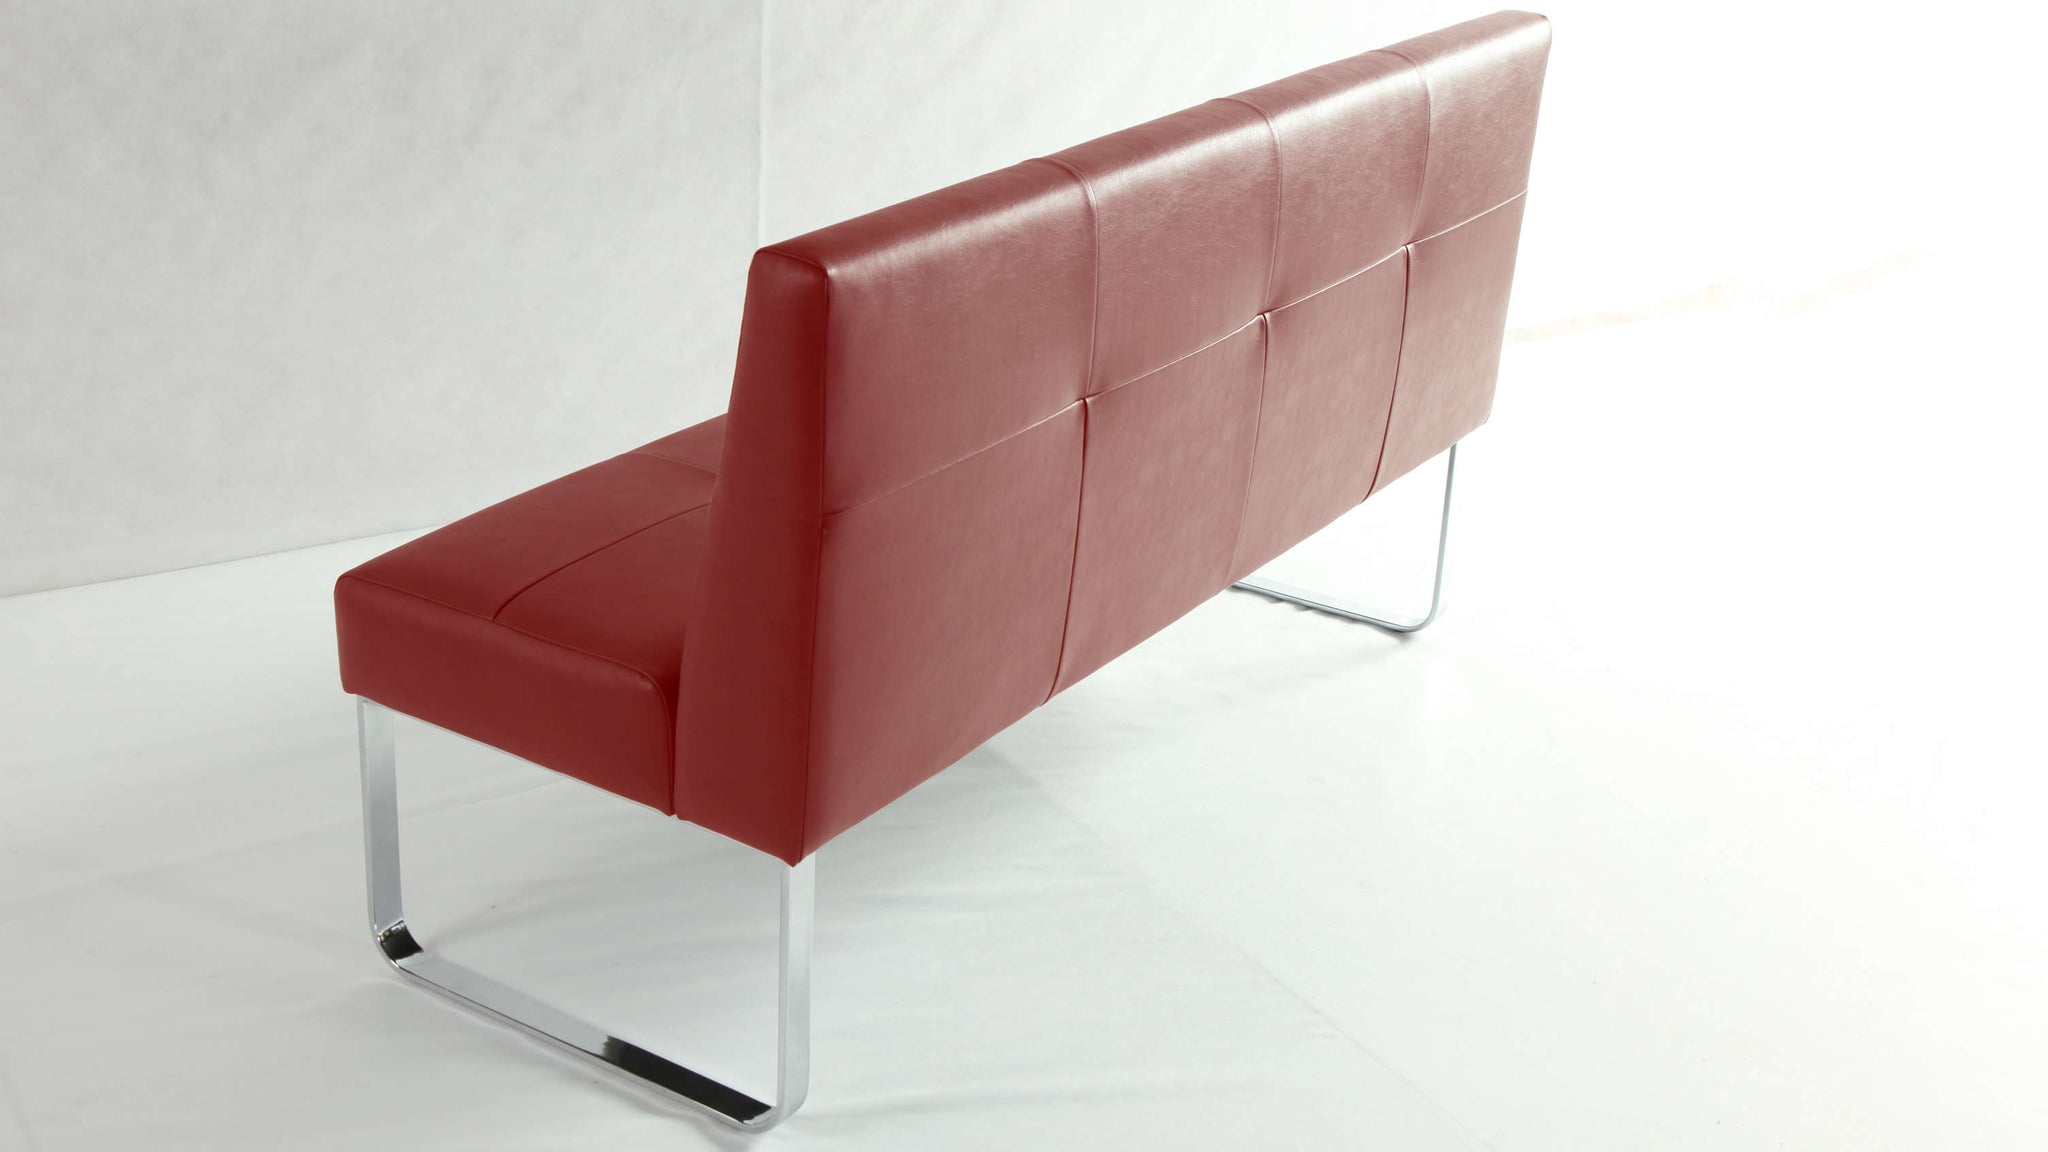 Large Red Dining Bench with Backrest